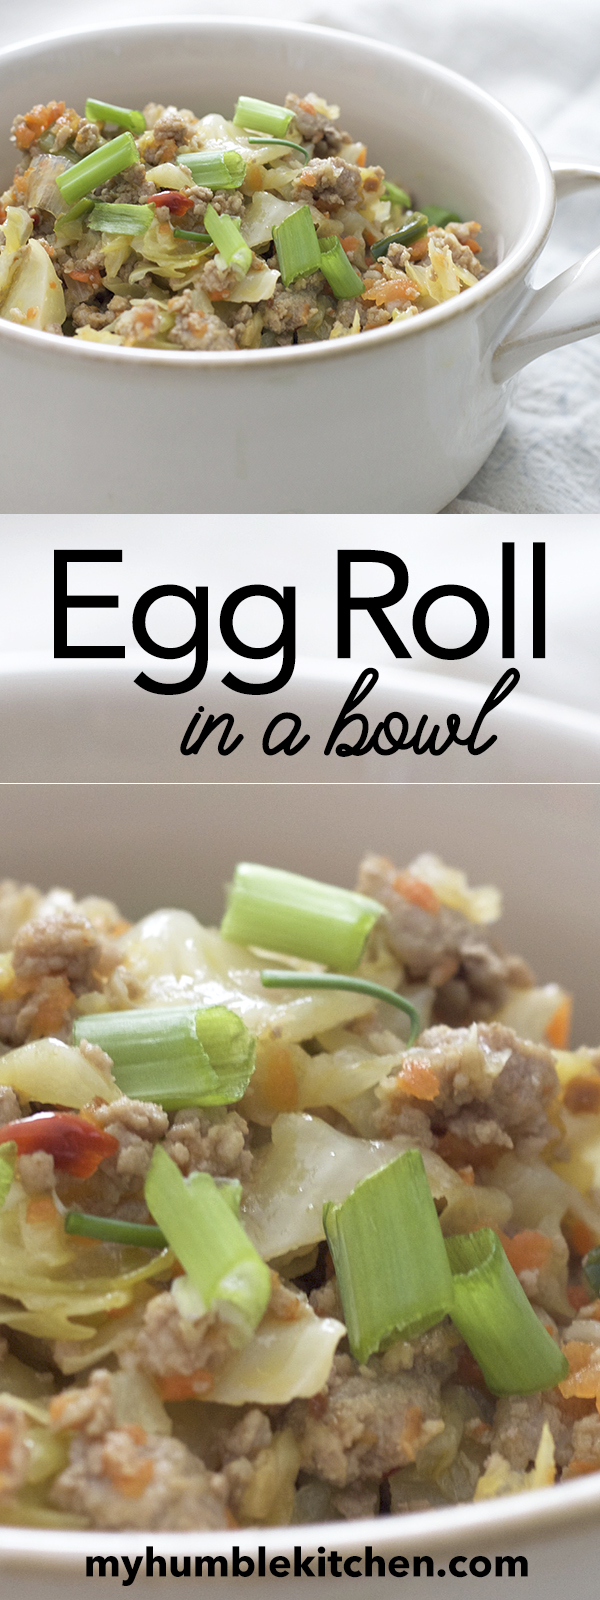 Egg Roll in a Bowl | myhumblekitchen.com